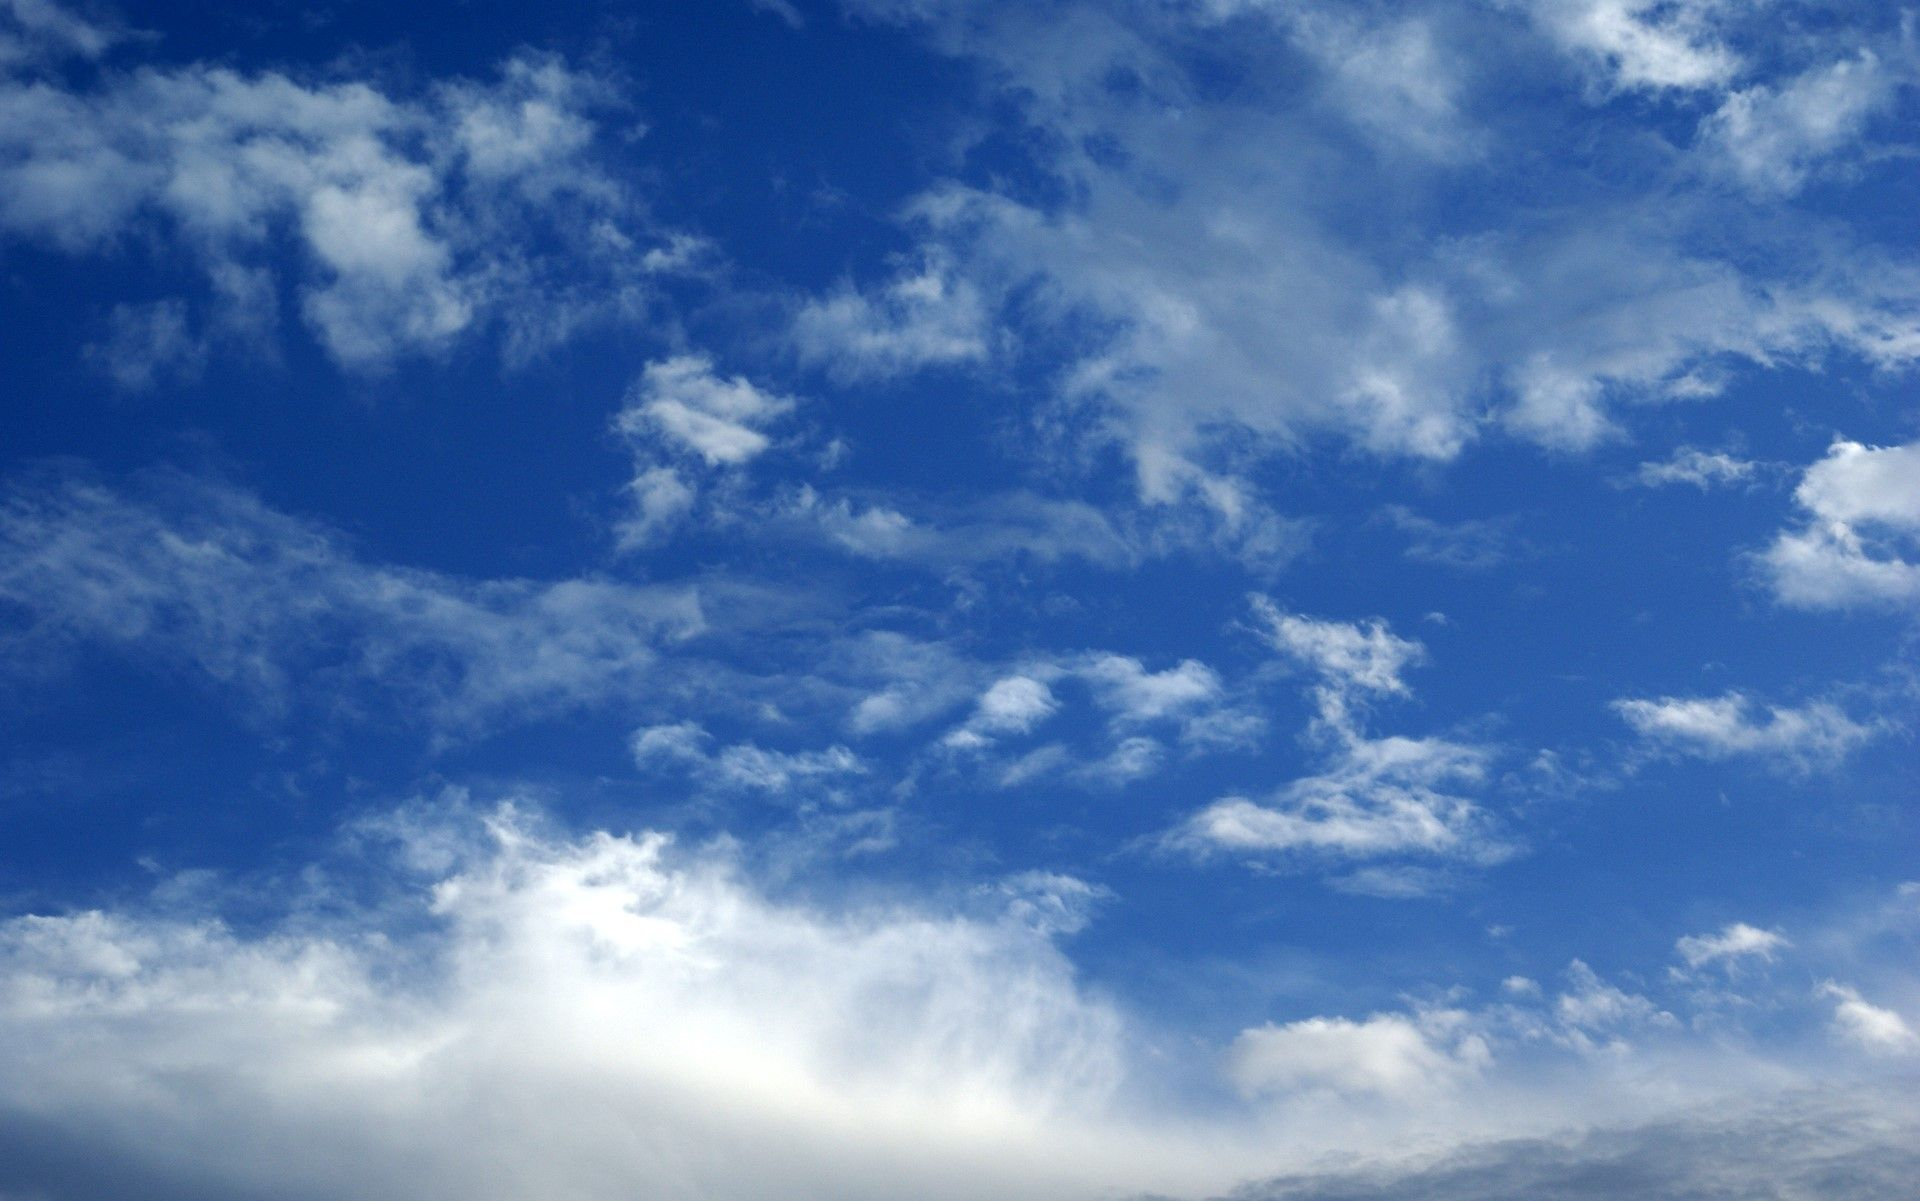 Blue Sky Clouds Wallpapers Free Hi Res Blue sky clouds